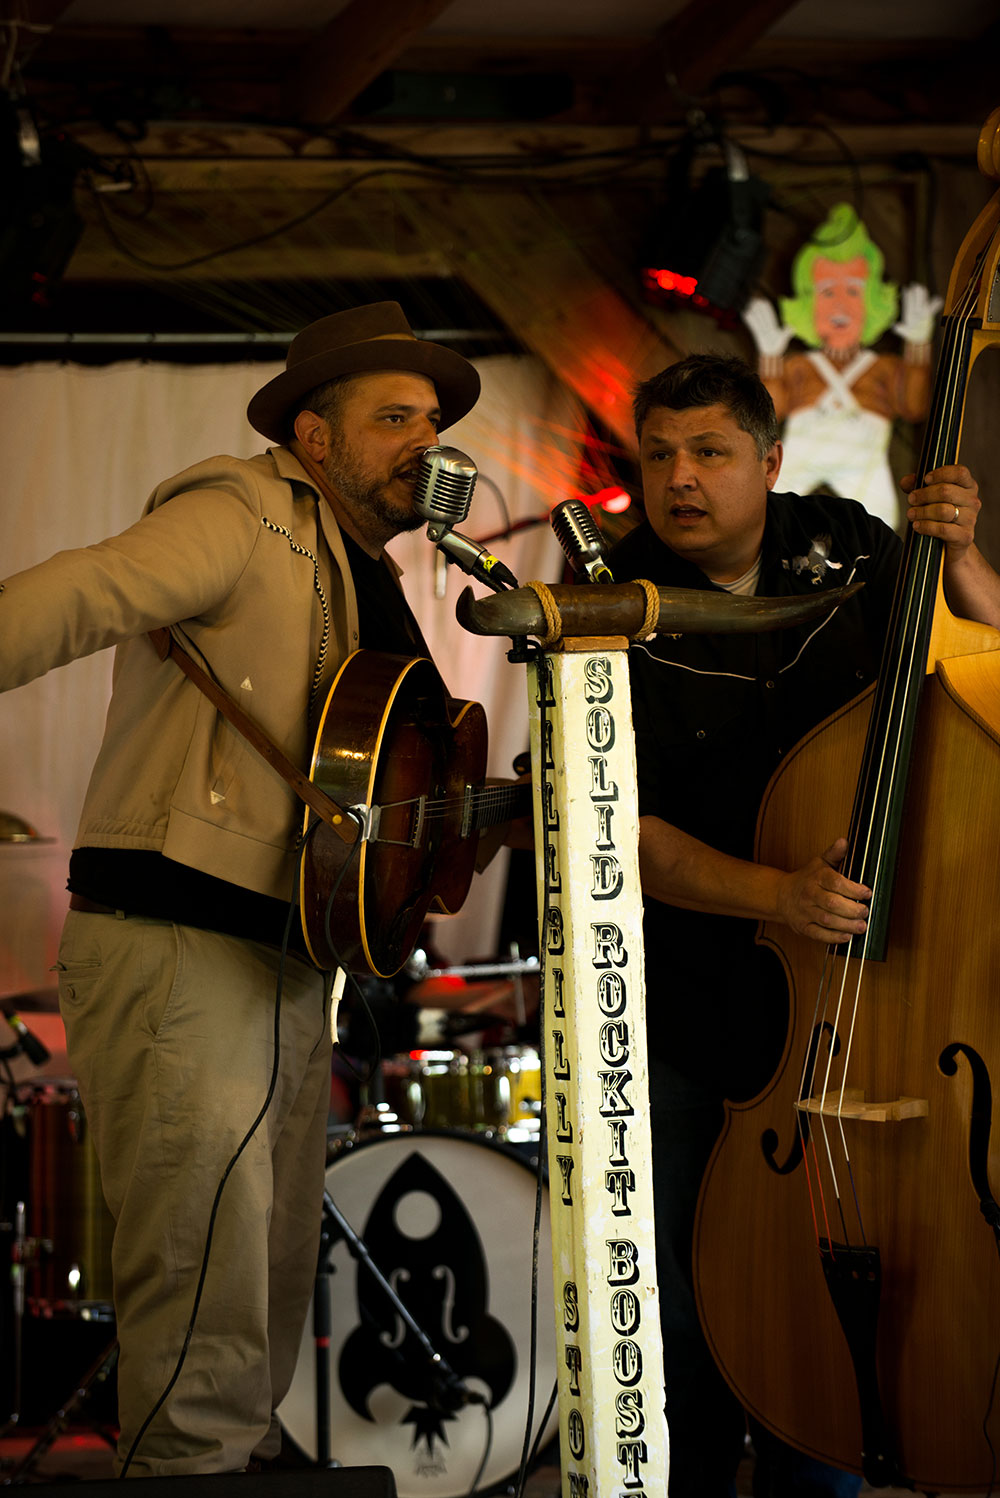 The-Moonshiners-Ball-2016-Peter-McDermott-copyright-protected- (16)